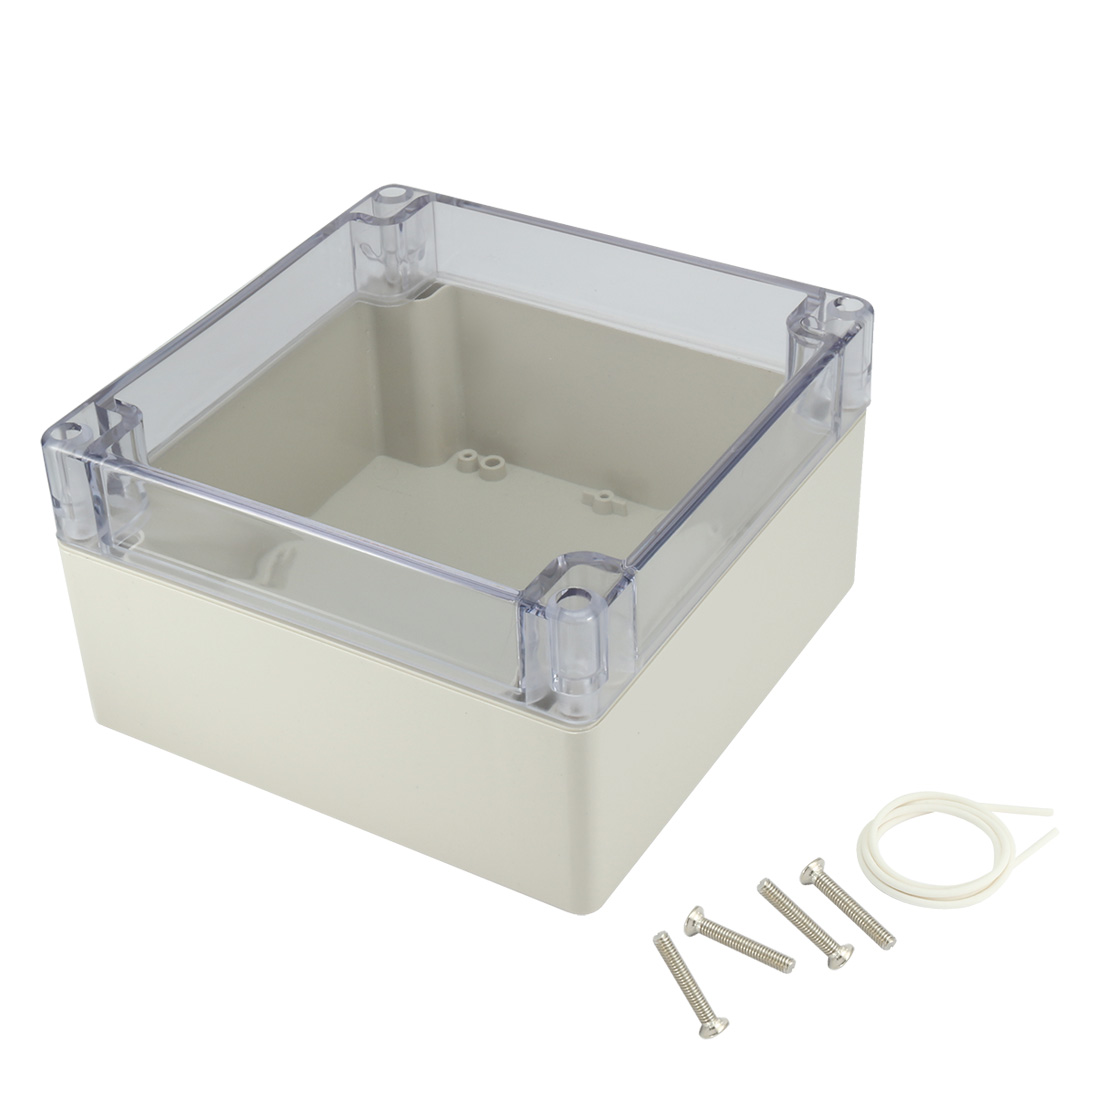 "6.3""x6.3""x3.54""(160mm x 160mm x 90mm) ABS Junction Box Universal Project Enclosure w PC Transparent Cover"